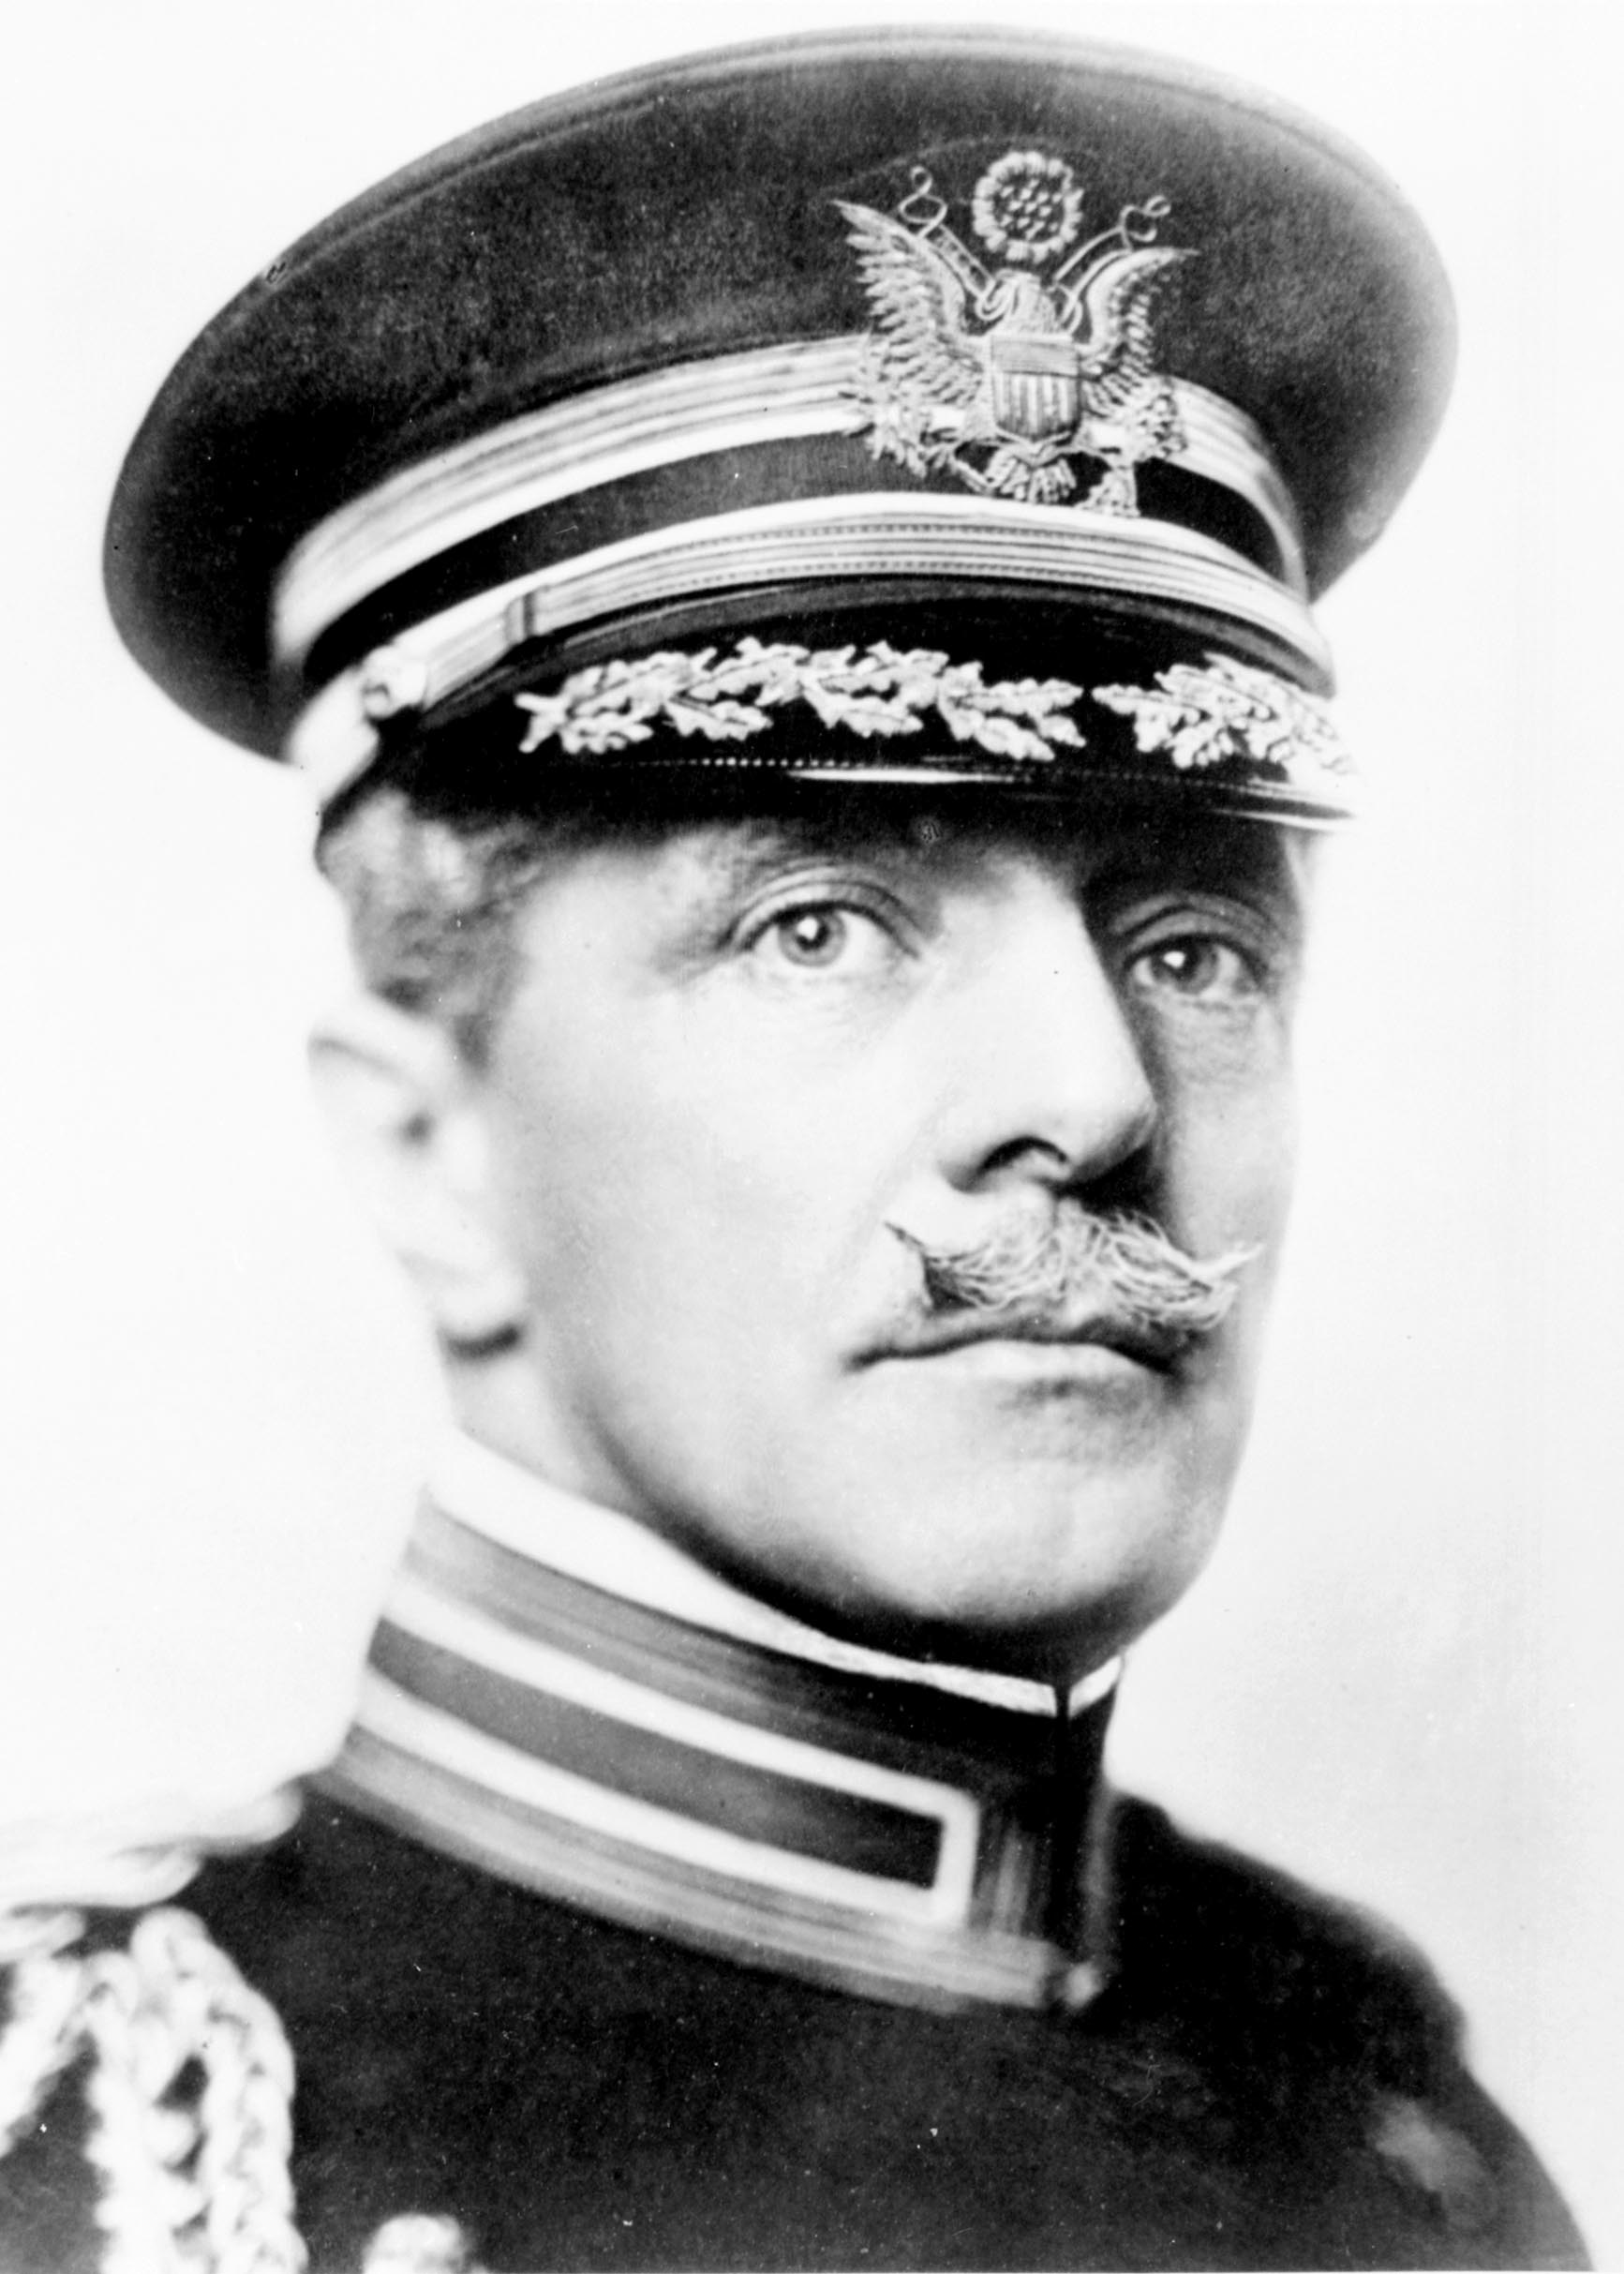 Maj. William W. Harts